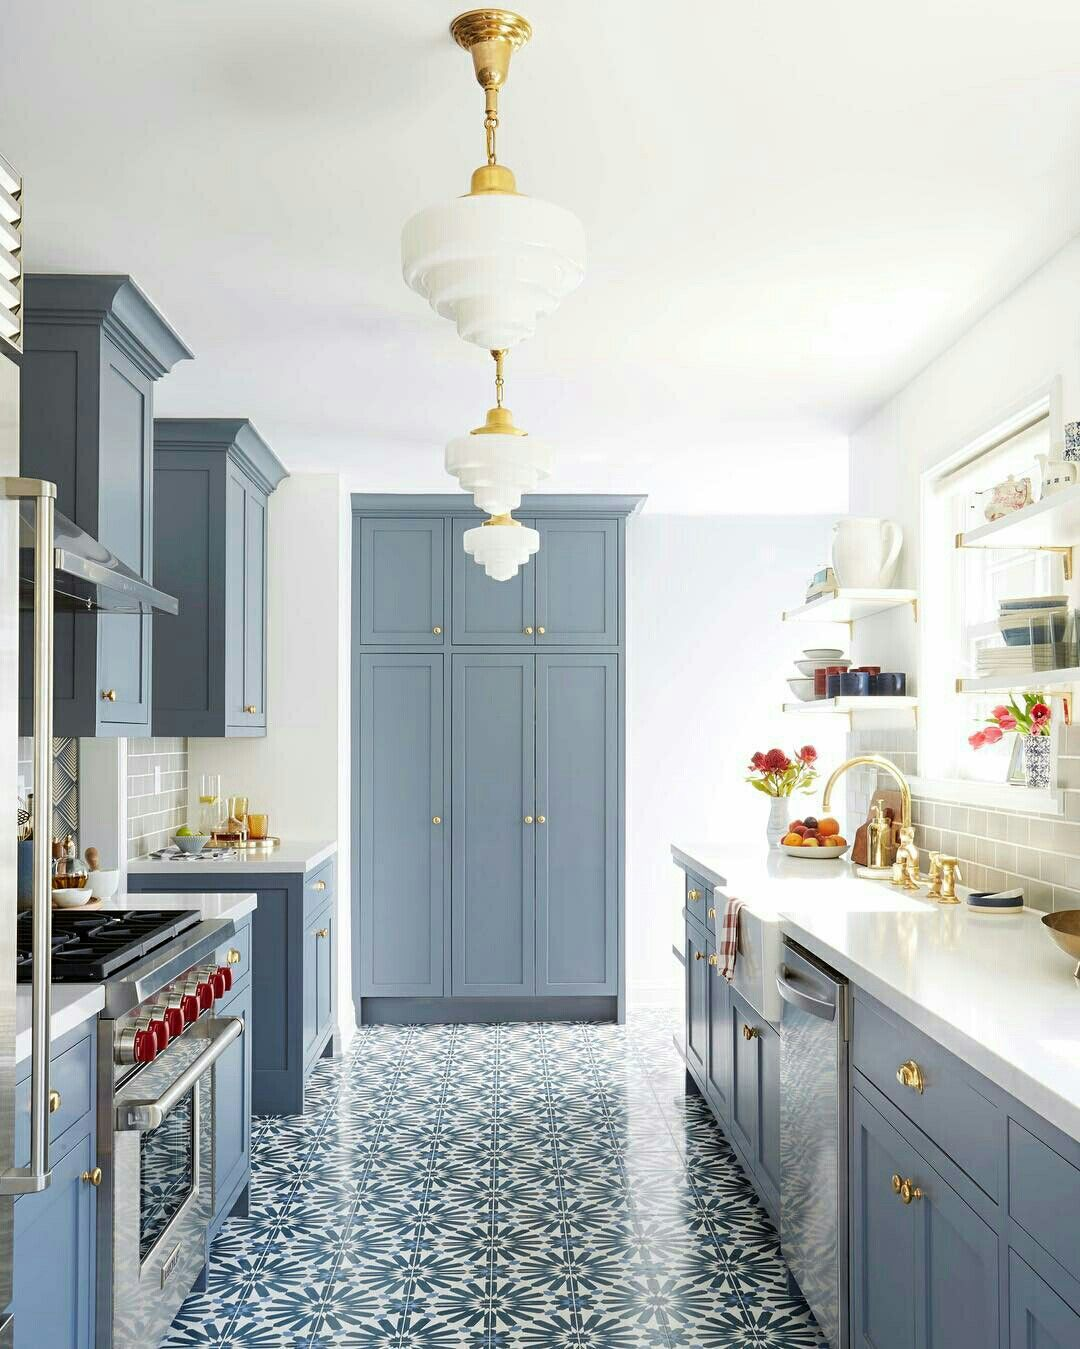 Kitchen by B Owens | dessert cafe | Pinterest | Kitchens, Backsplash ...